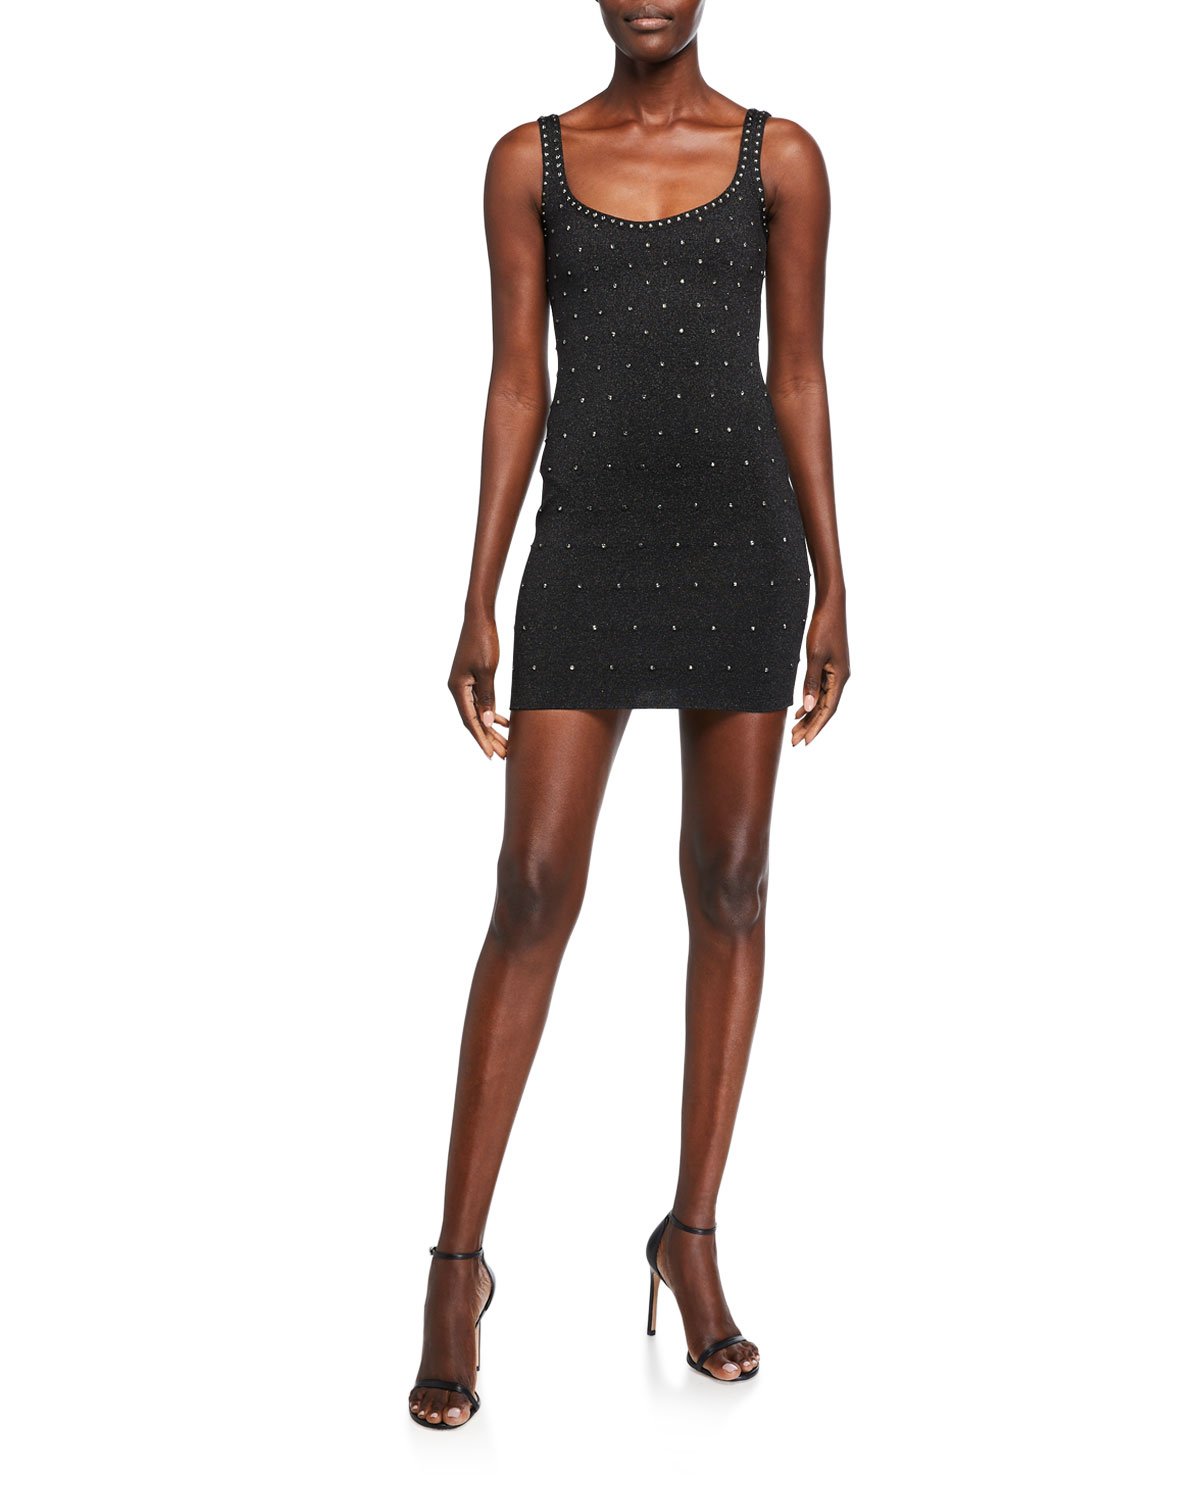 Herve Leger Studded Shimmered Bodycon Dress